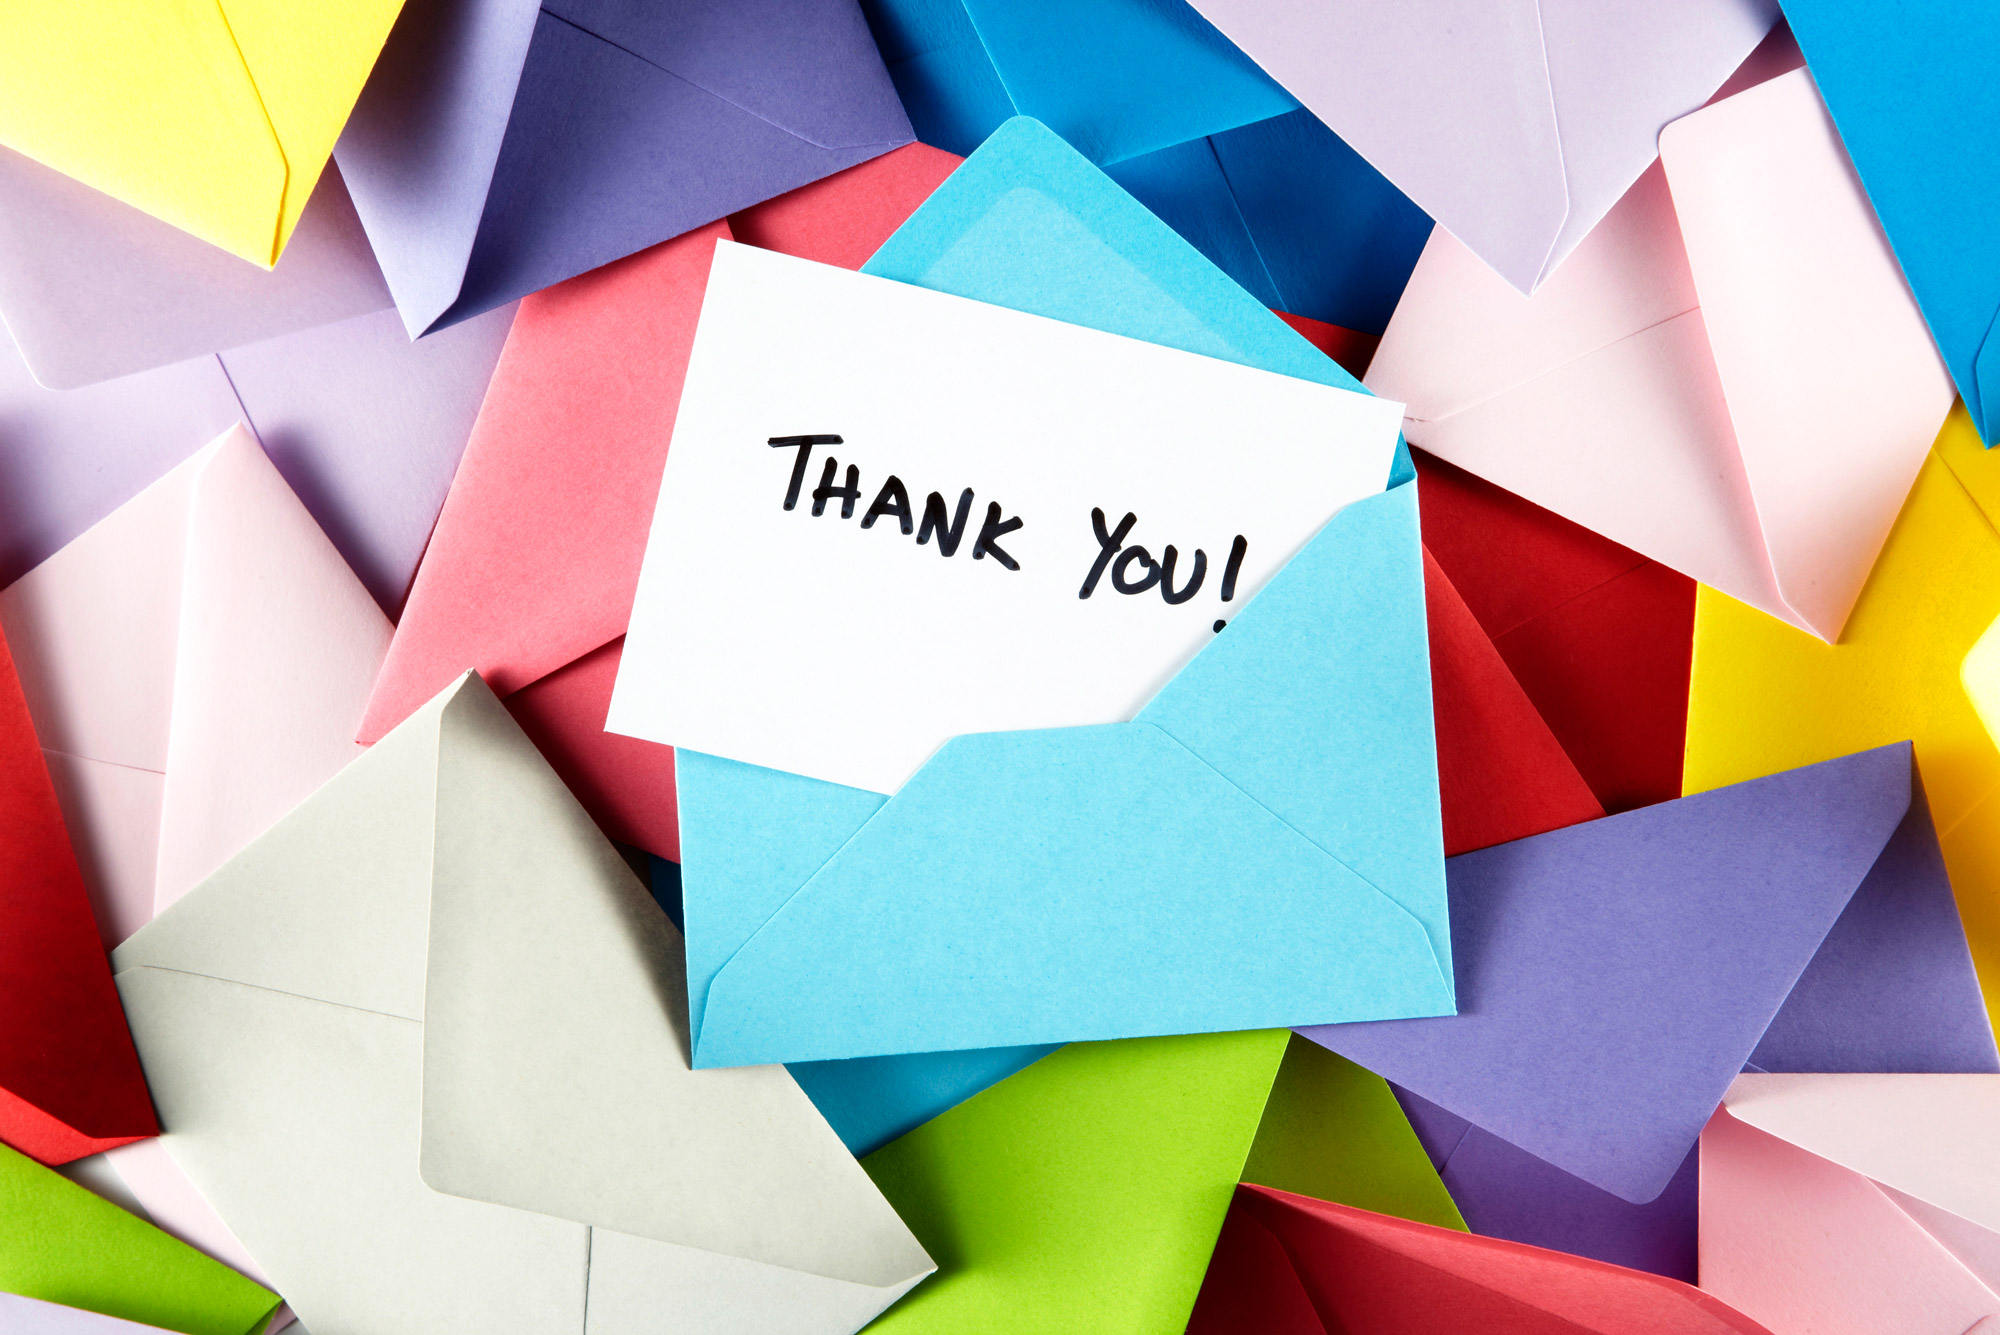 Image of a pile of colored envelopes with a note that says 'Thank You!' popping out of one.